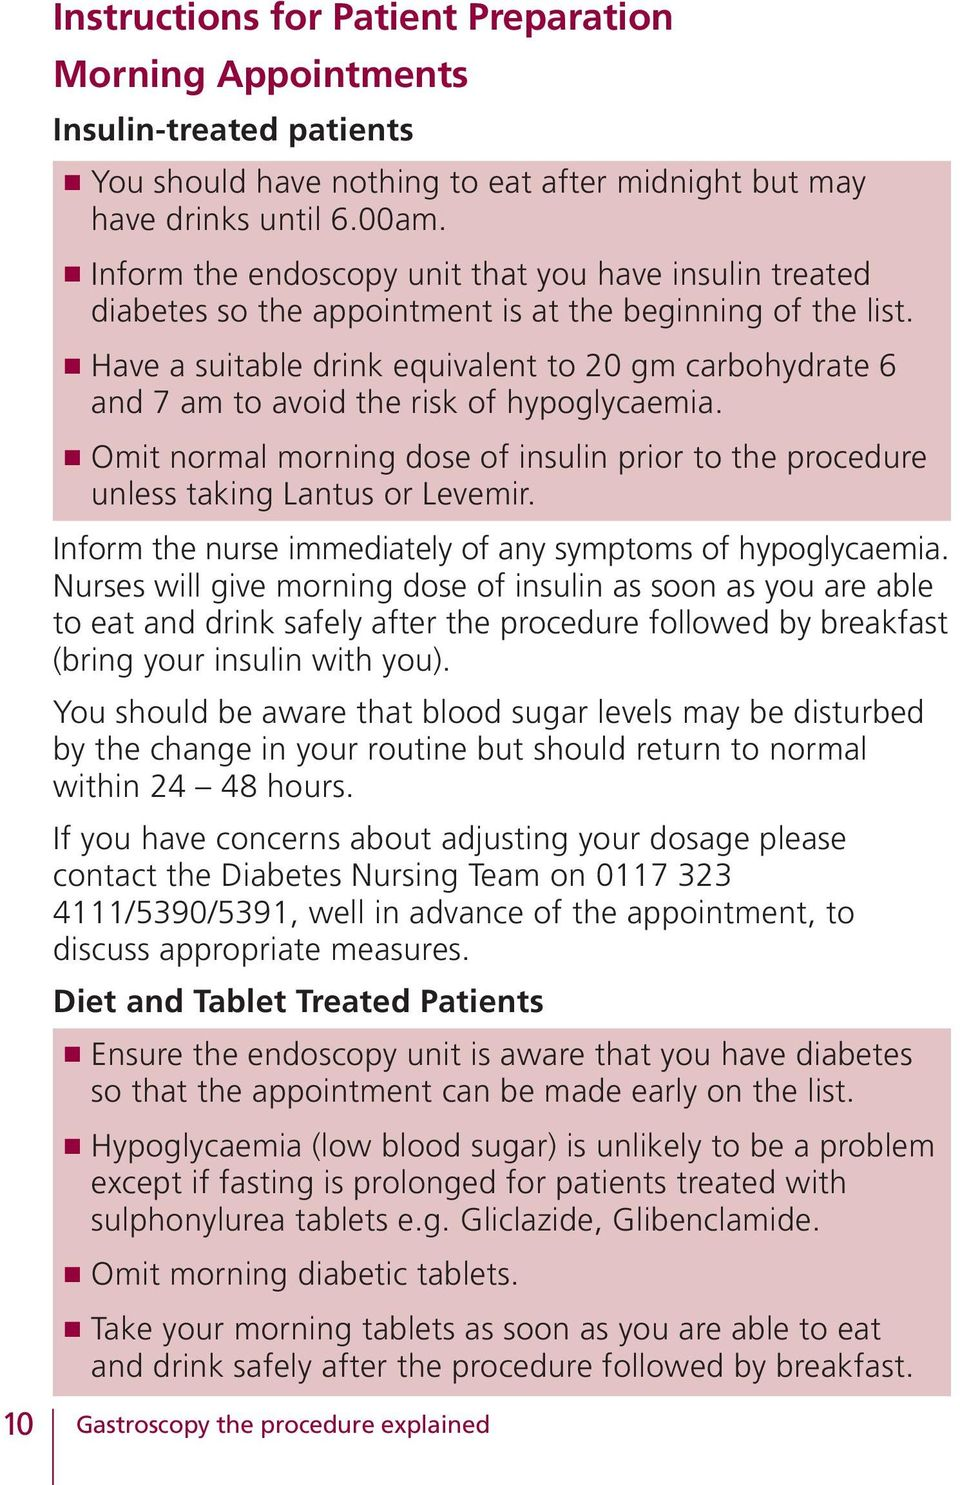 n Have a suitable drink equivalent to 20 gm carbohydrate 6 and 7 am to avoid the risk of hypoglycaemia. n Omit normal morning dose of insulin prior to the procedure unless taking Lantus or Levemir.